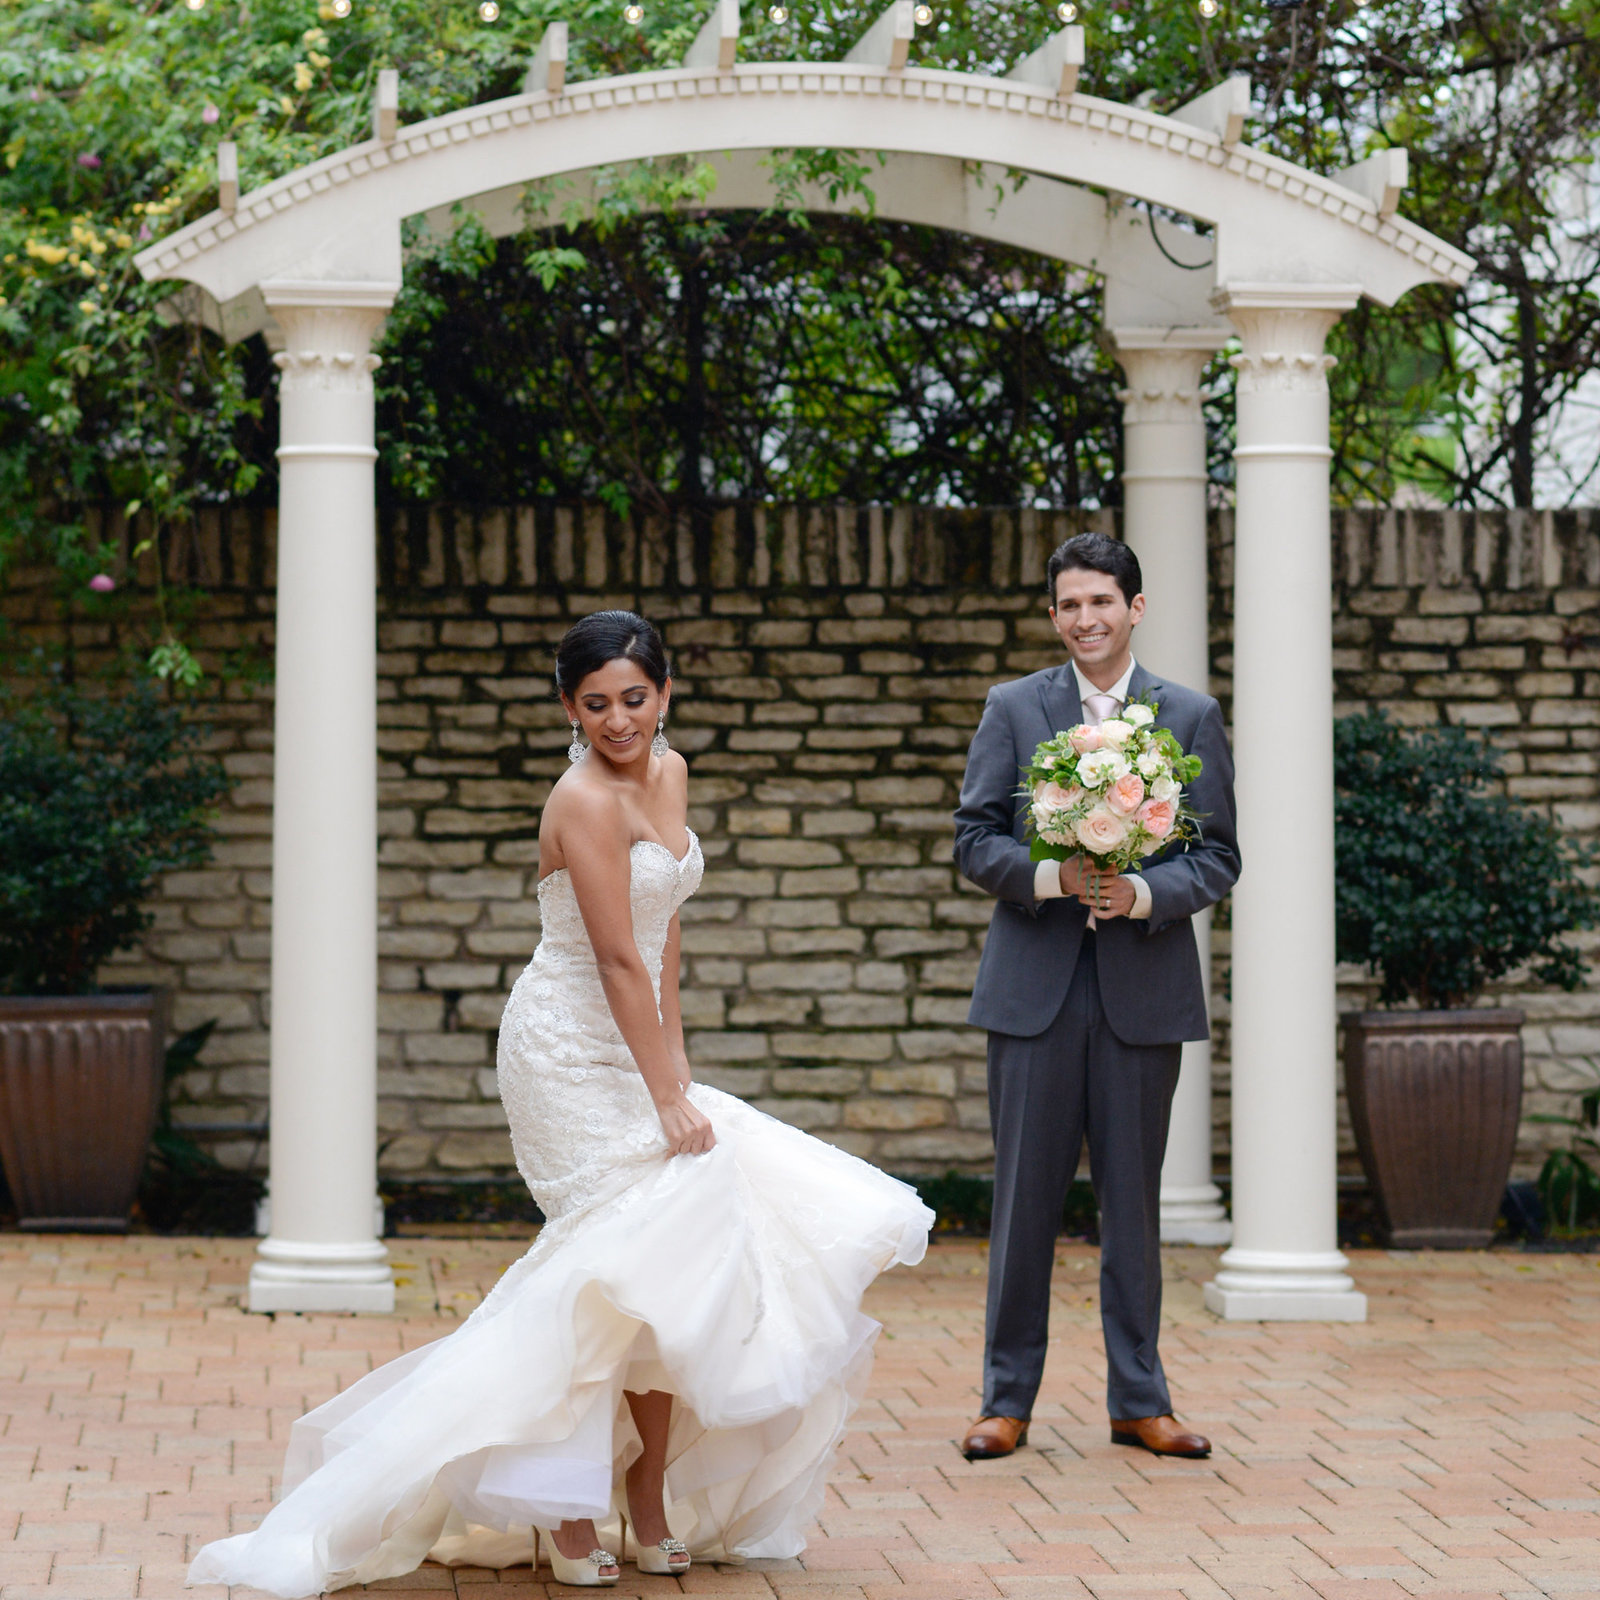 Texas Federation of Women's Club Mansion wedding photographer